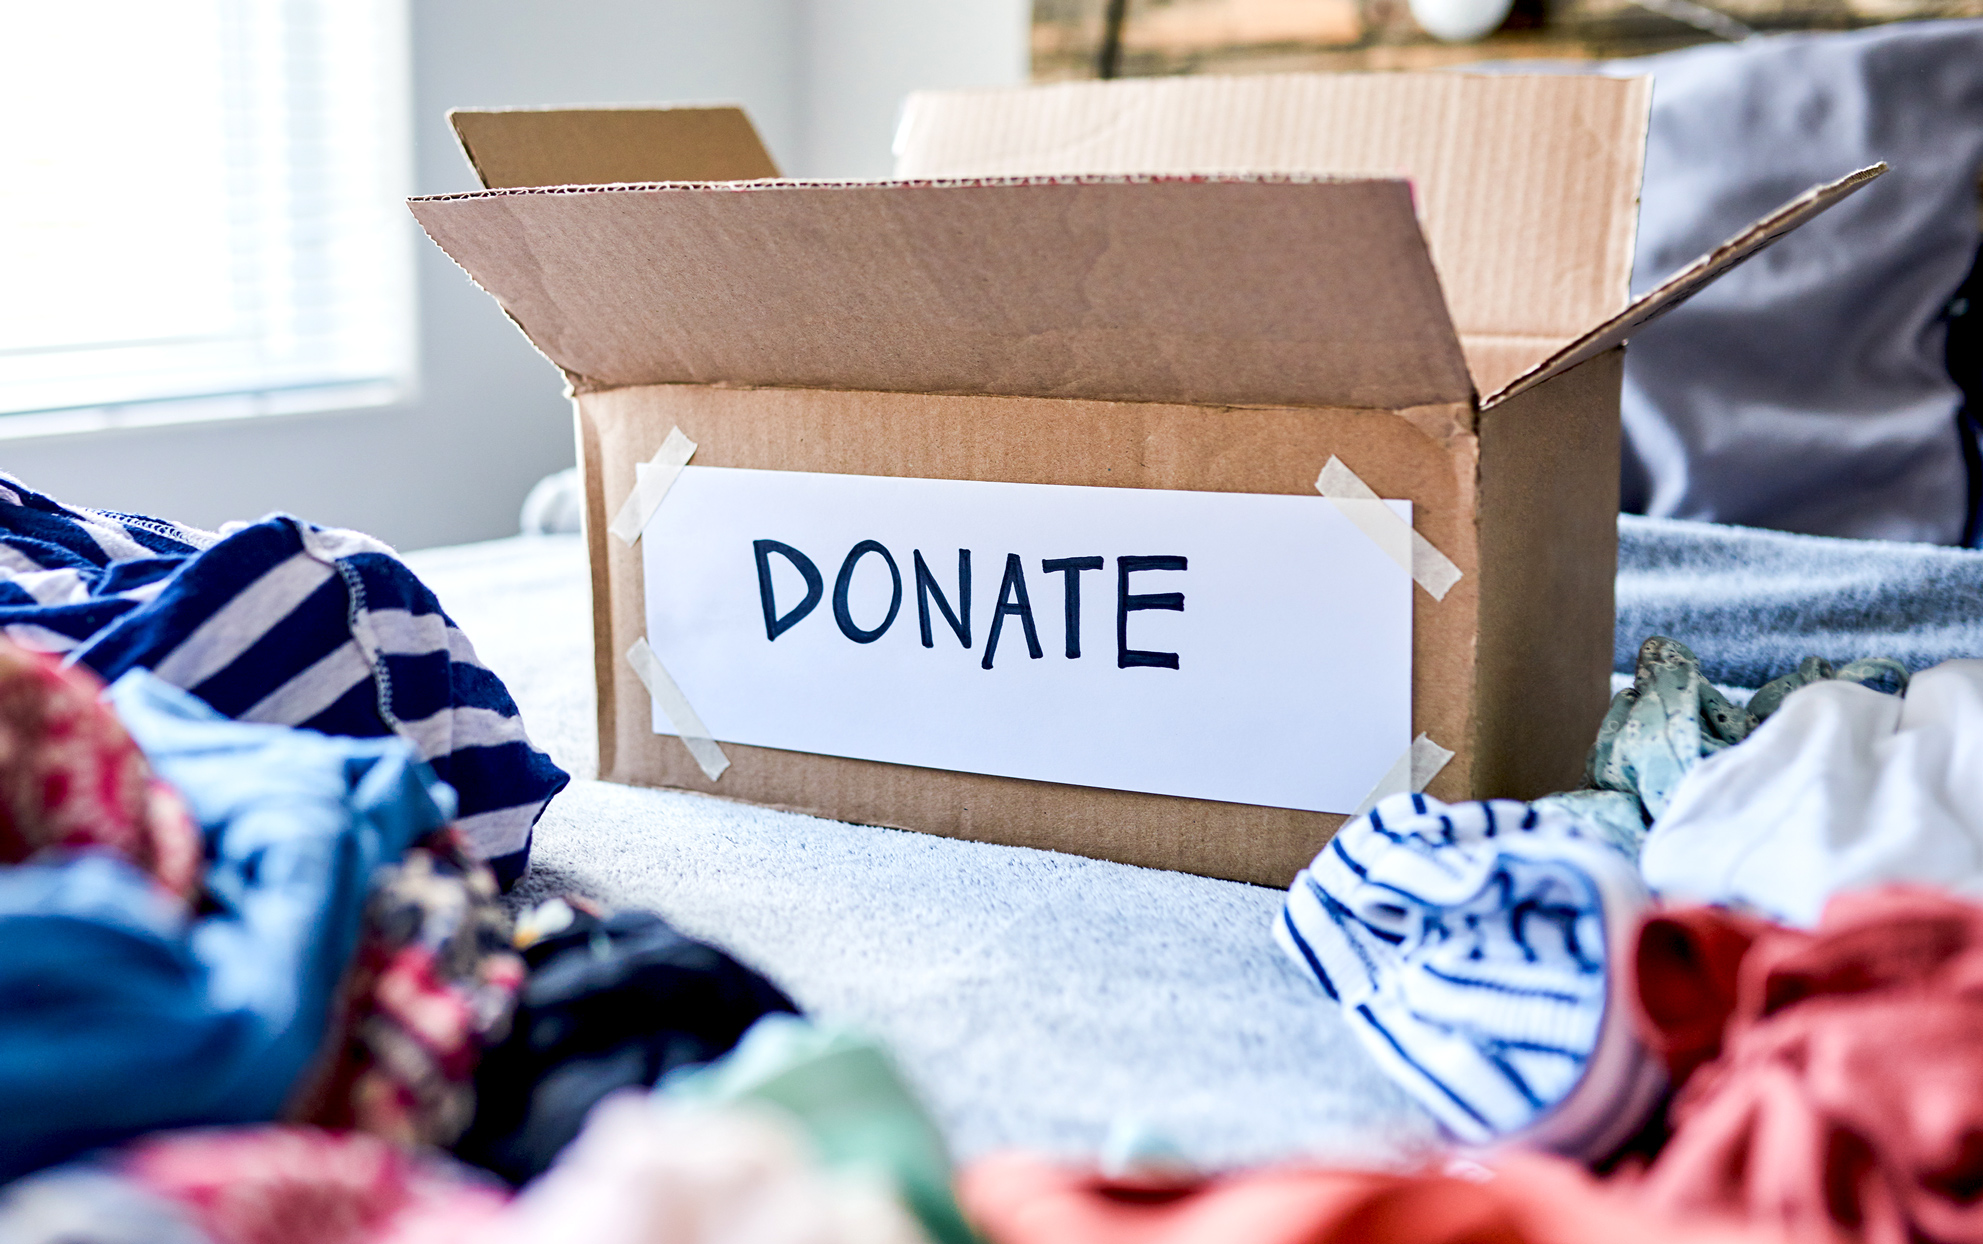 A donation box on a bed with clothes around it